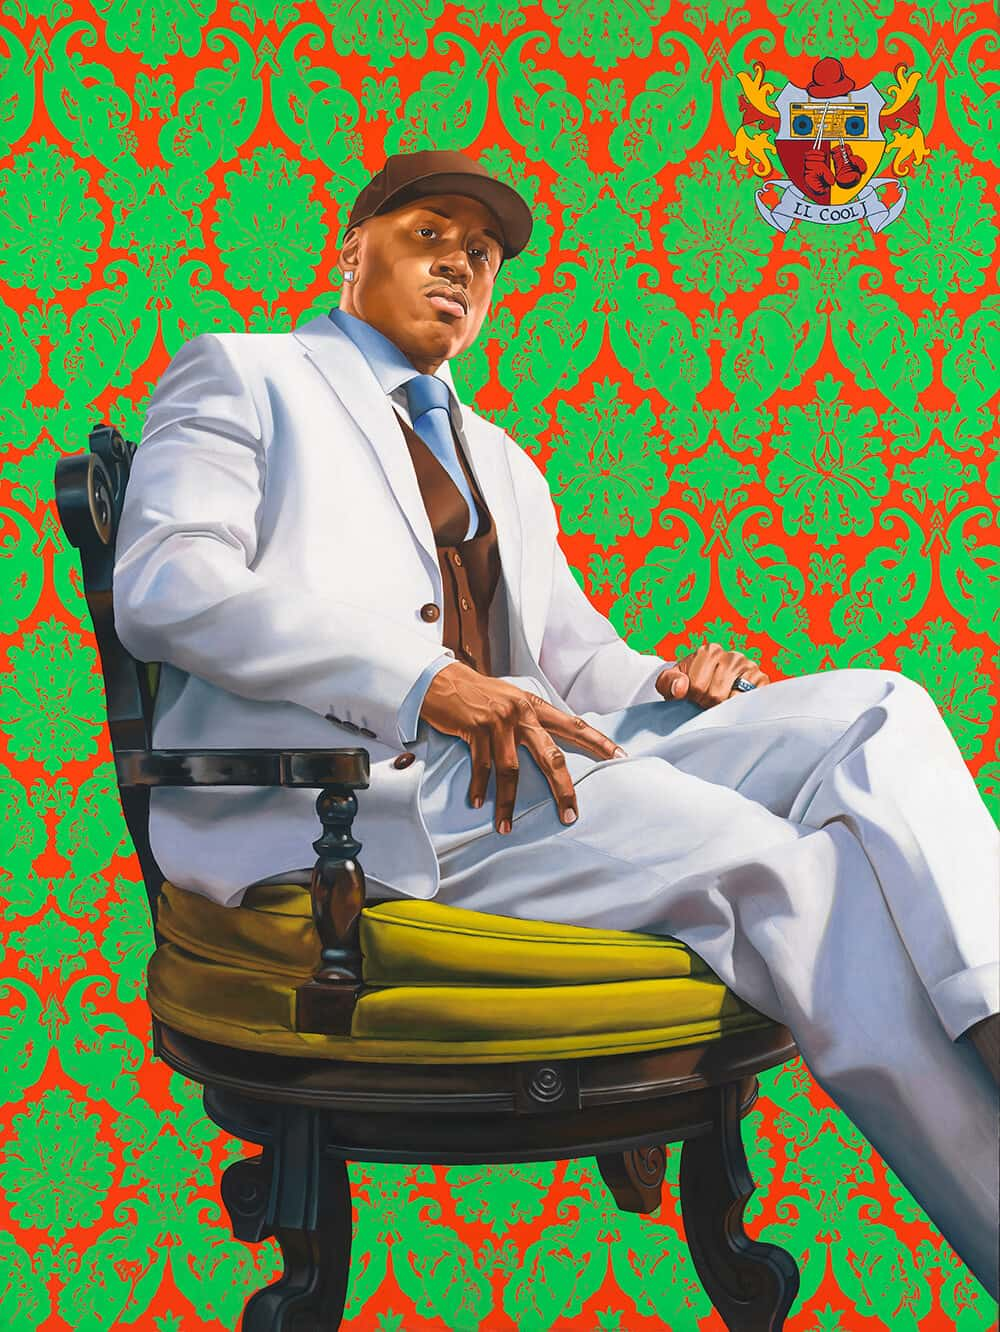 LL Cool J by Kehinde Wiley, oil on canvas, 2005. National Portrait Gallery, Smithsonian Institution; on loan from LL Cool J © Kehinde Wiley. Courtesy of Smithsonian National Portrait Gallery.